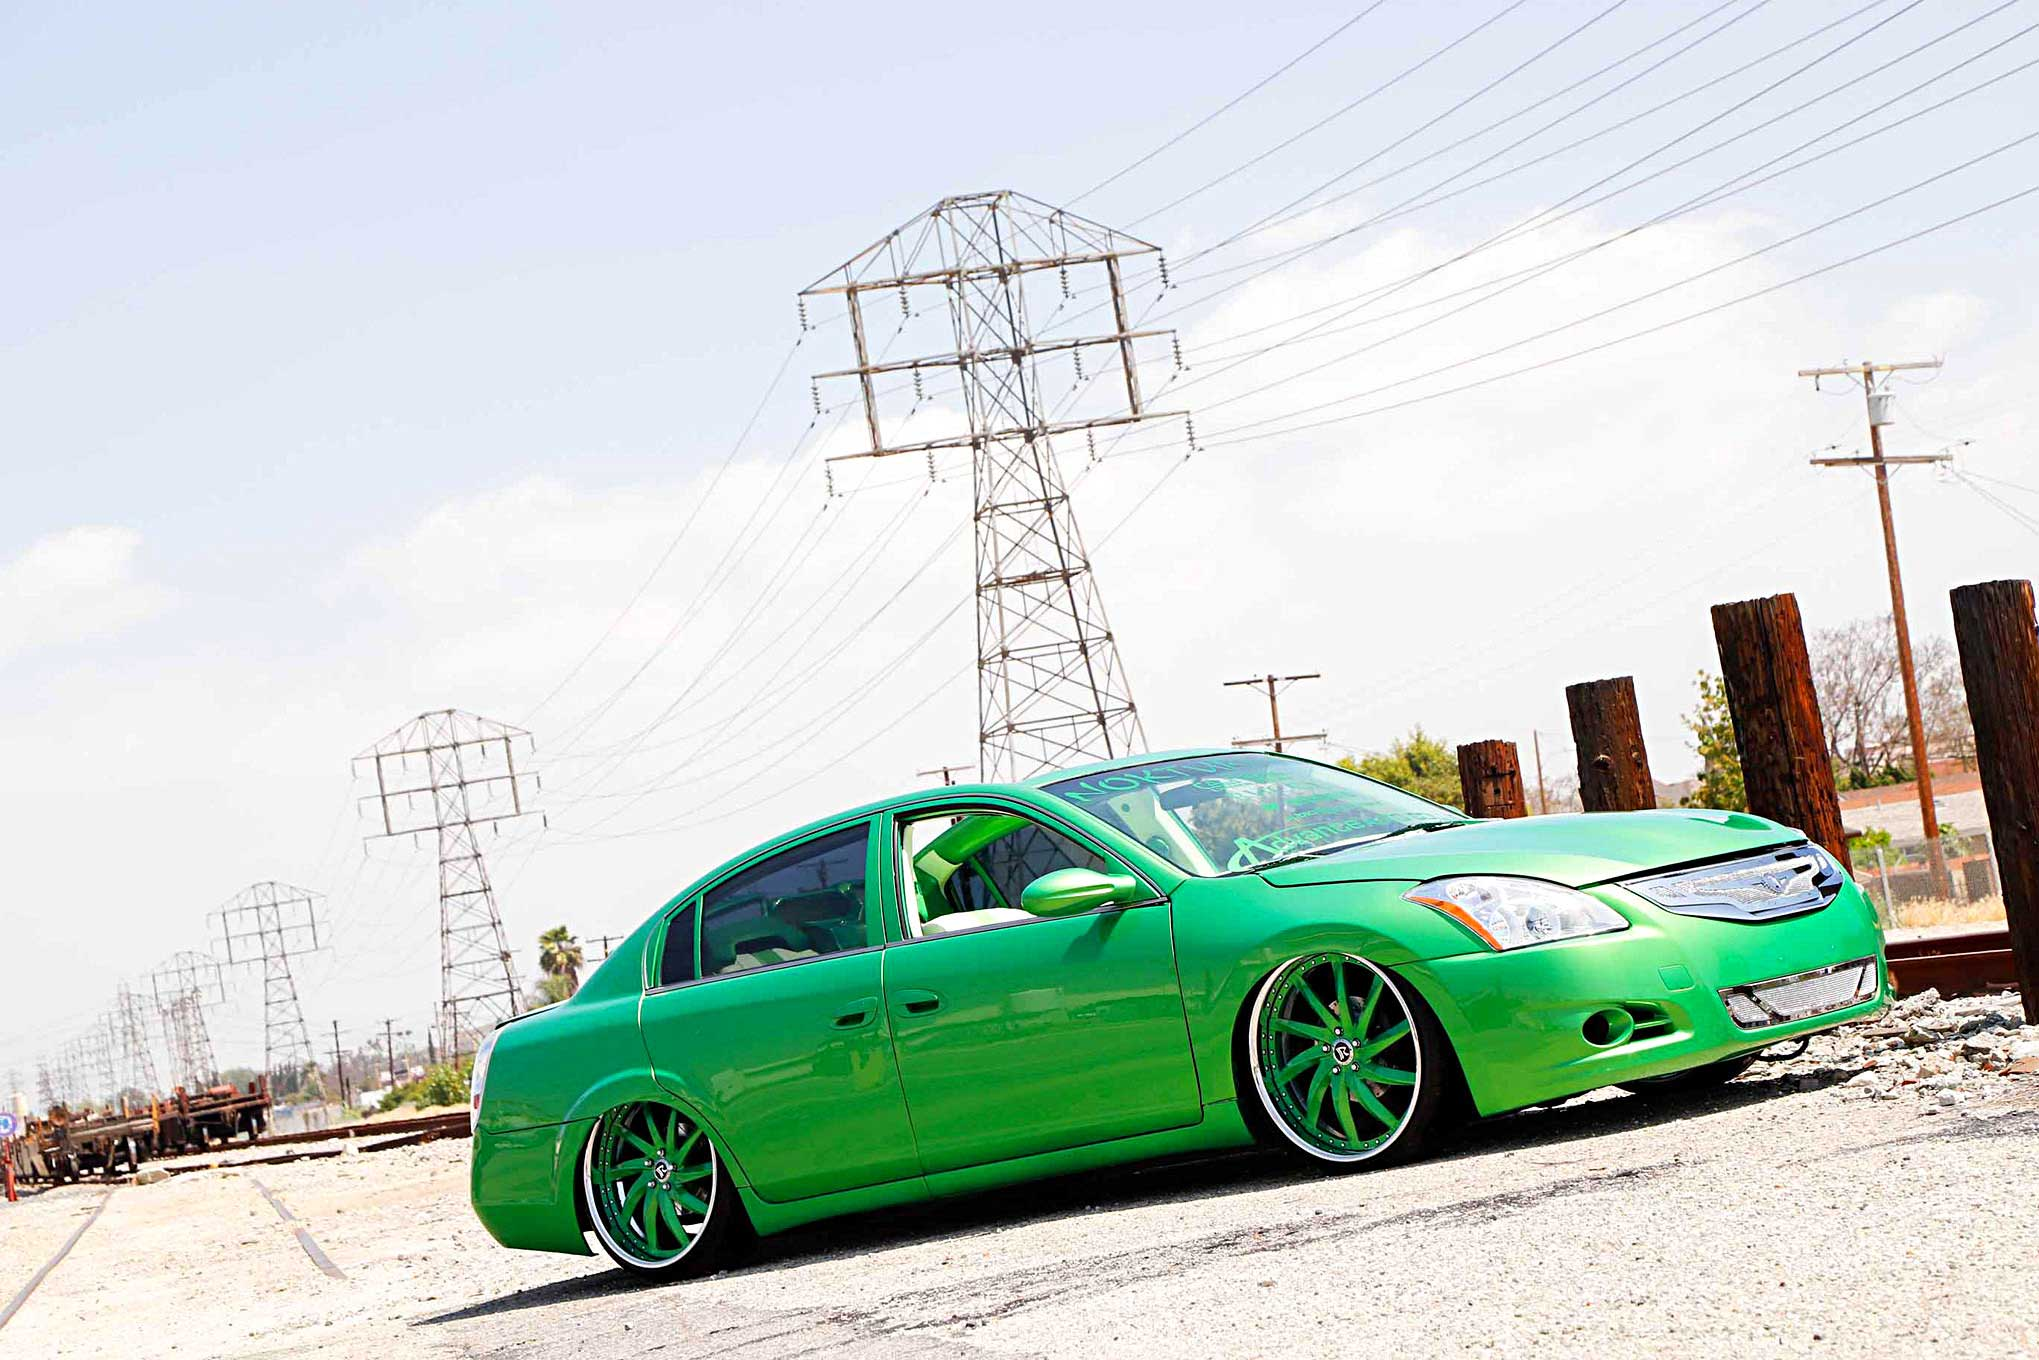 2005 nissan altima passenger side front view lowriderabout this editor